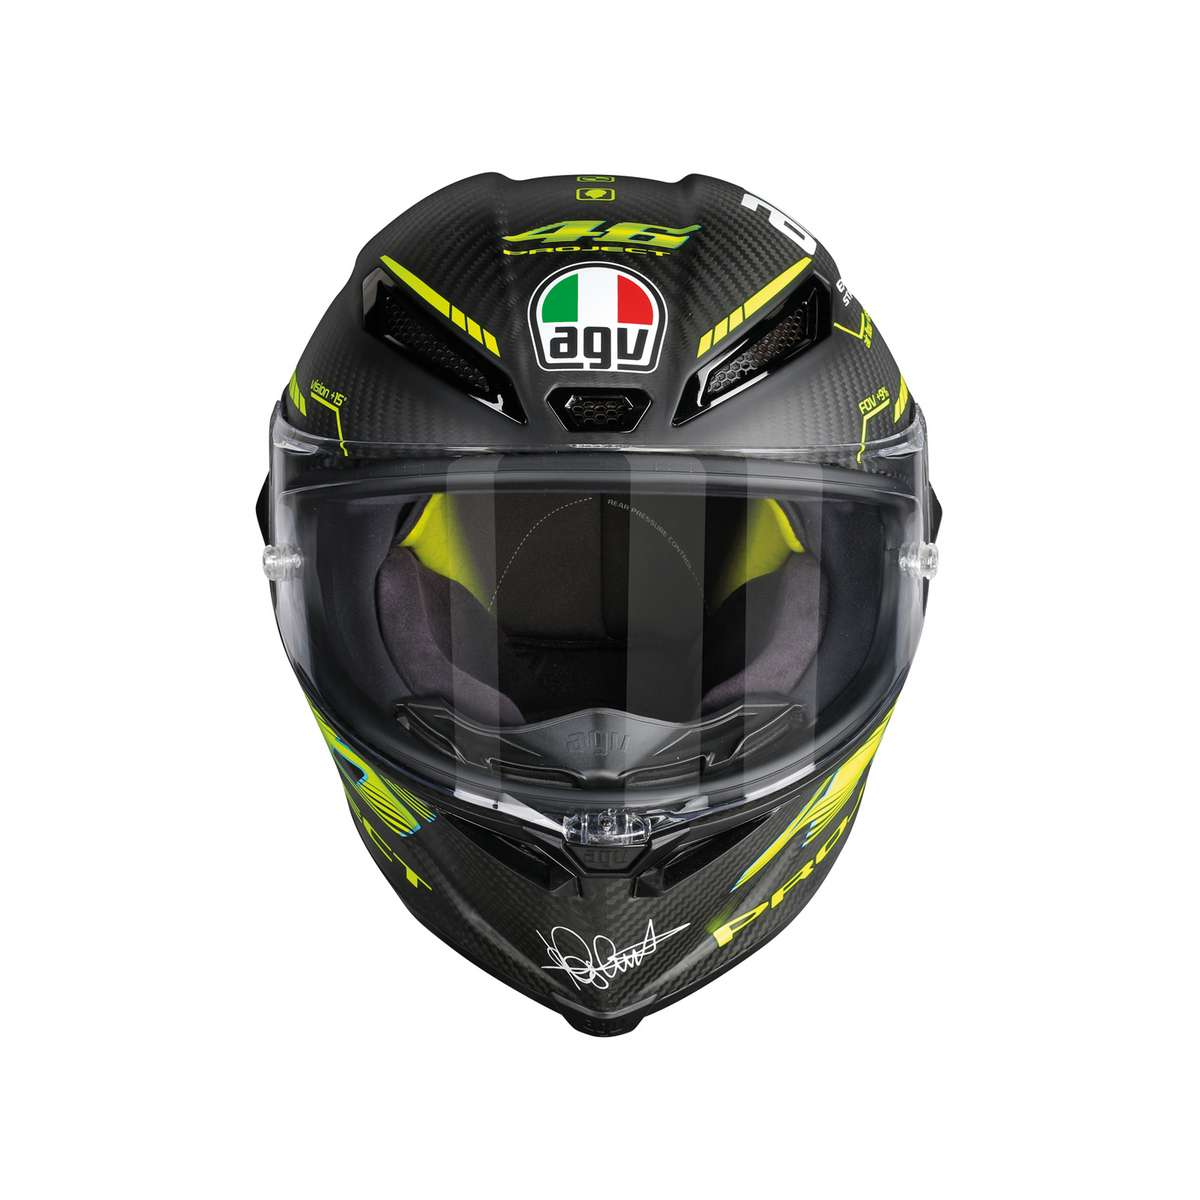 agv pista gp r top project 46 2 0 full face helmet. Black Bedroom Furniture Sets. Home Design Ideas